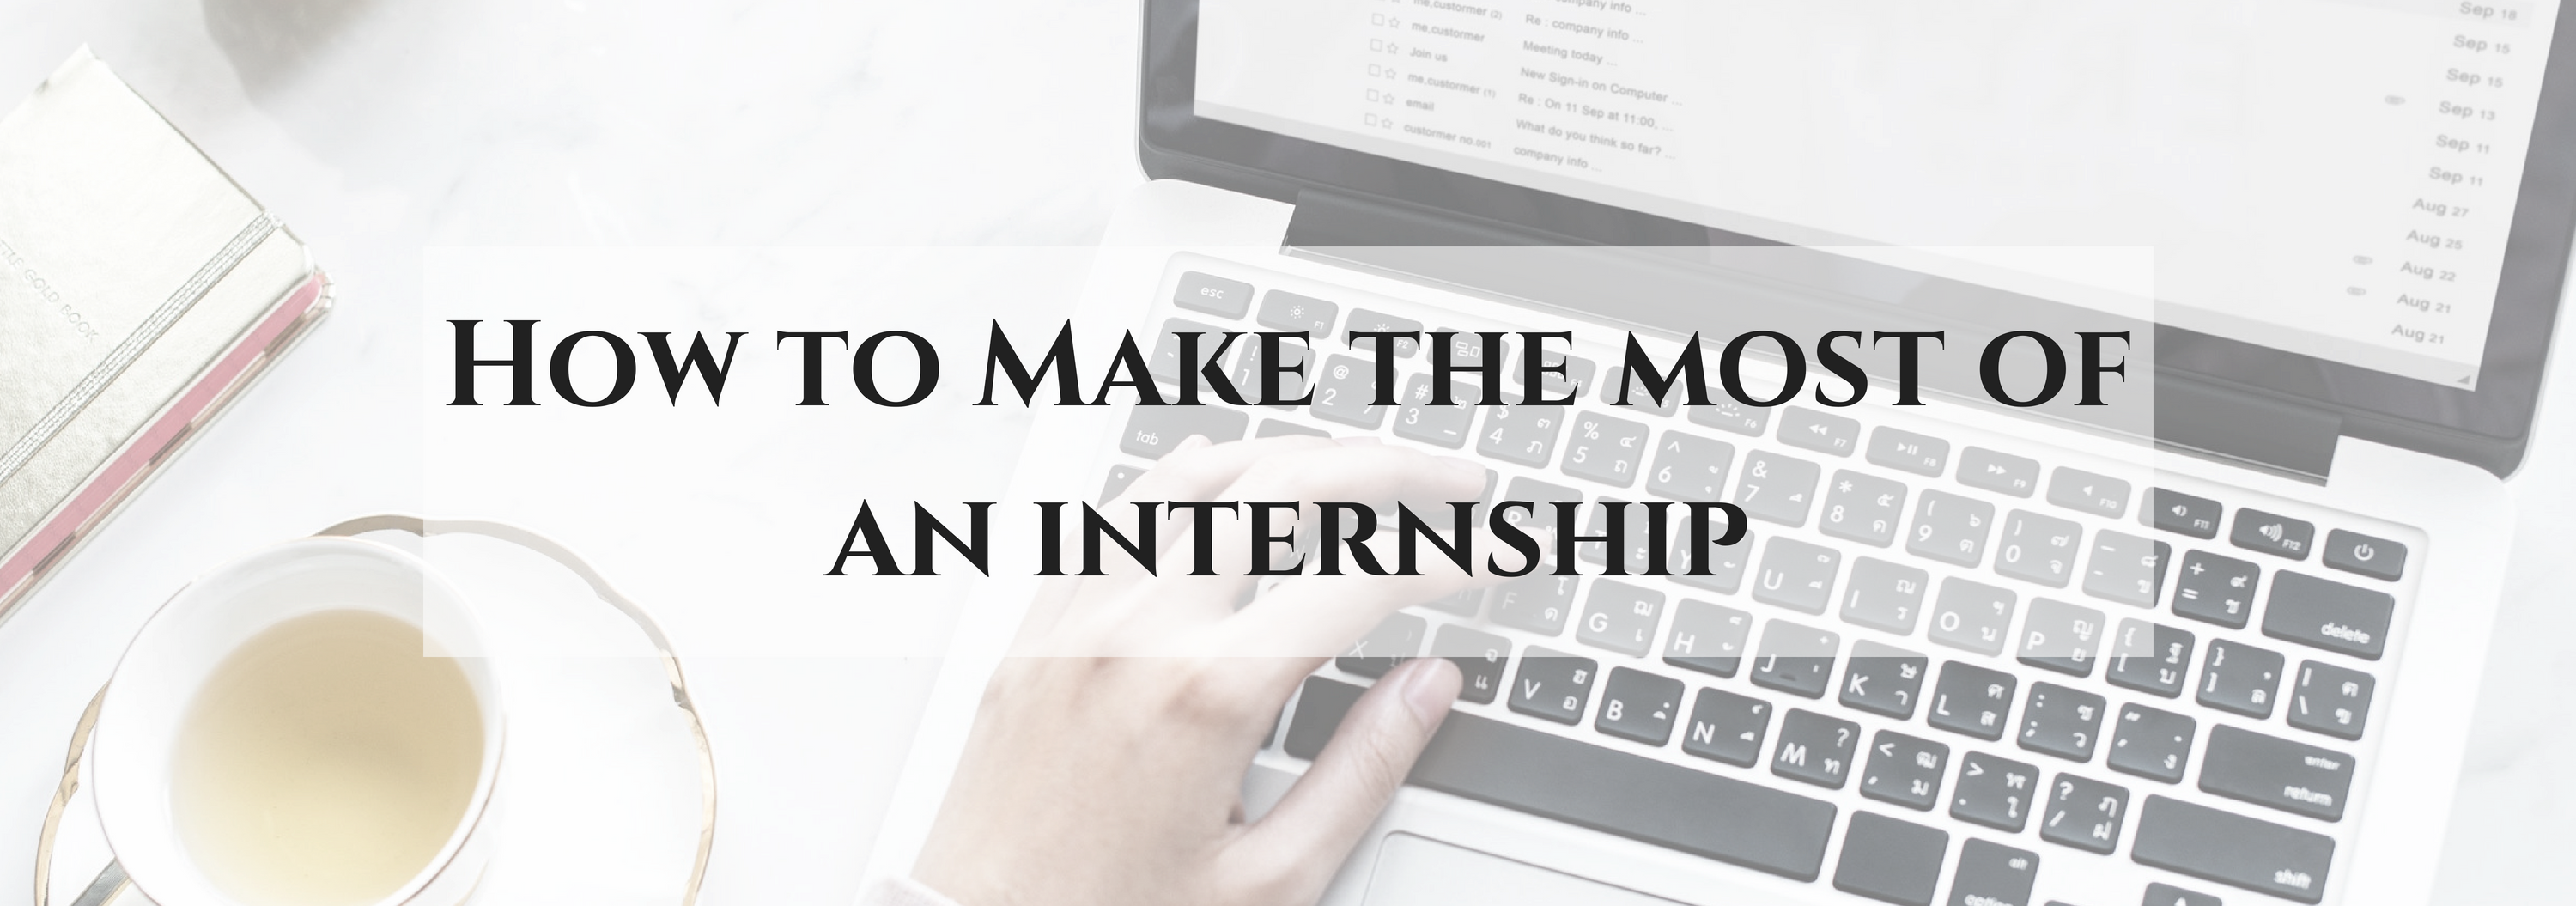 HOW-TO-MAKE-THE-MOST-OF-AN-INTERNSHIP